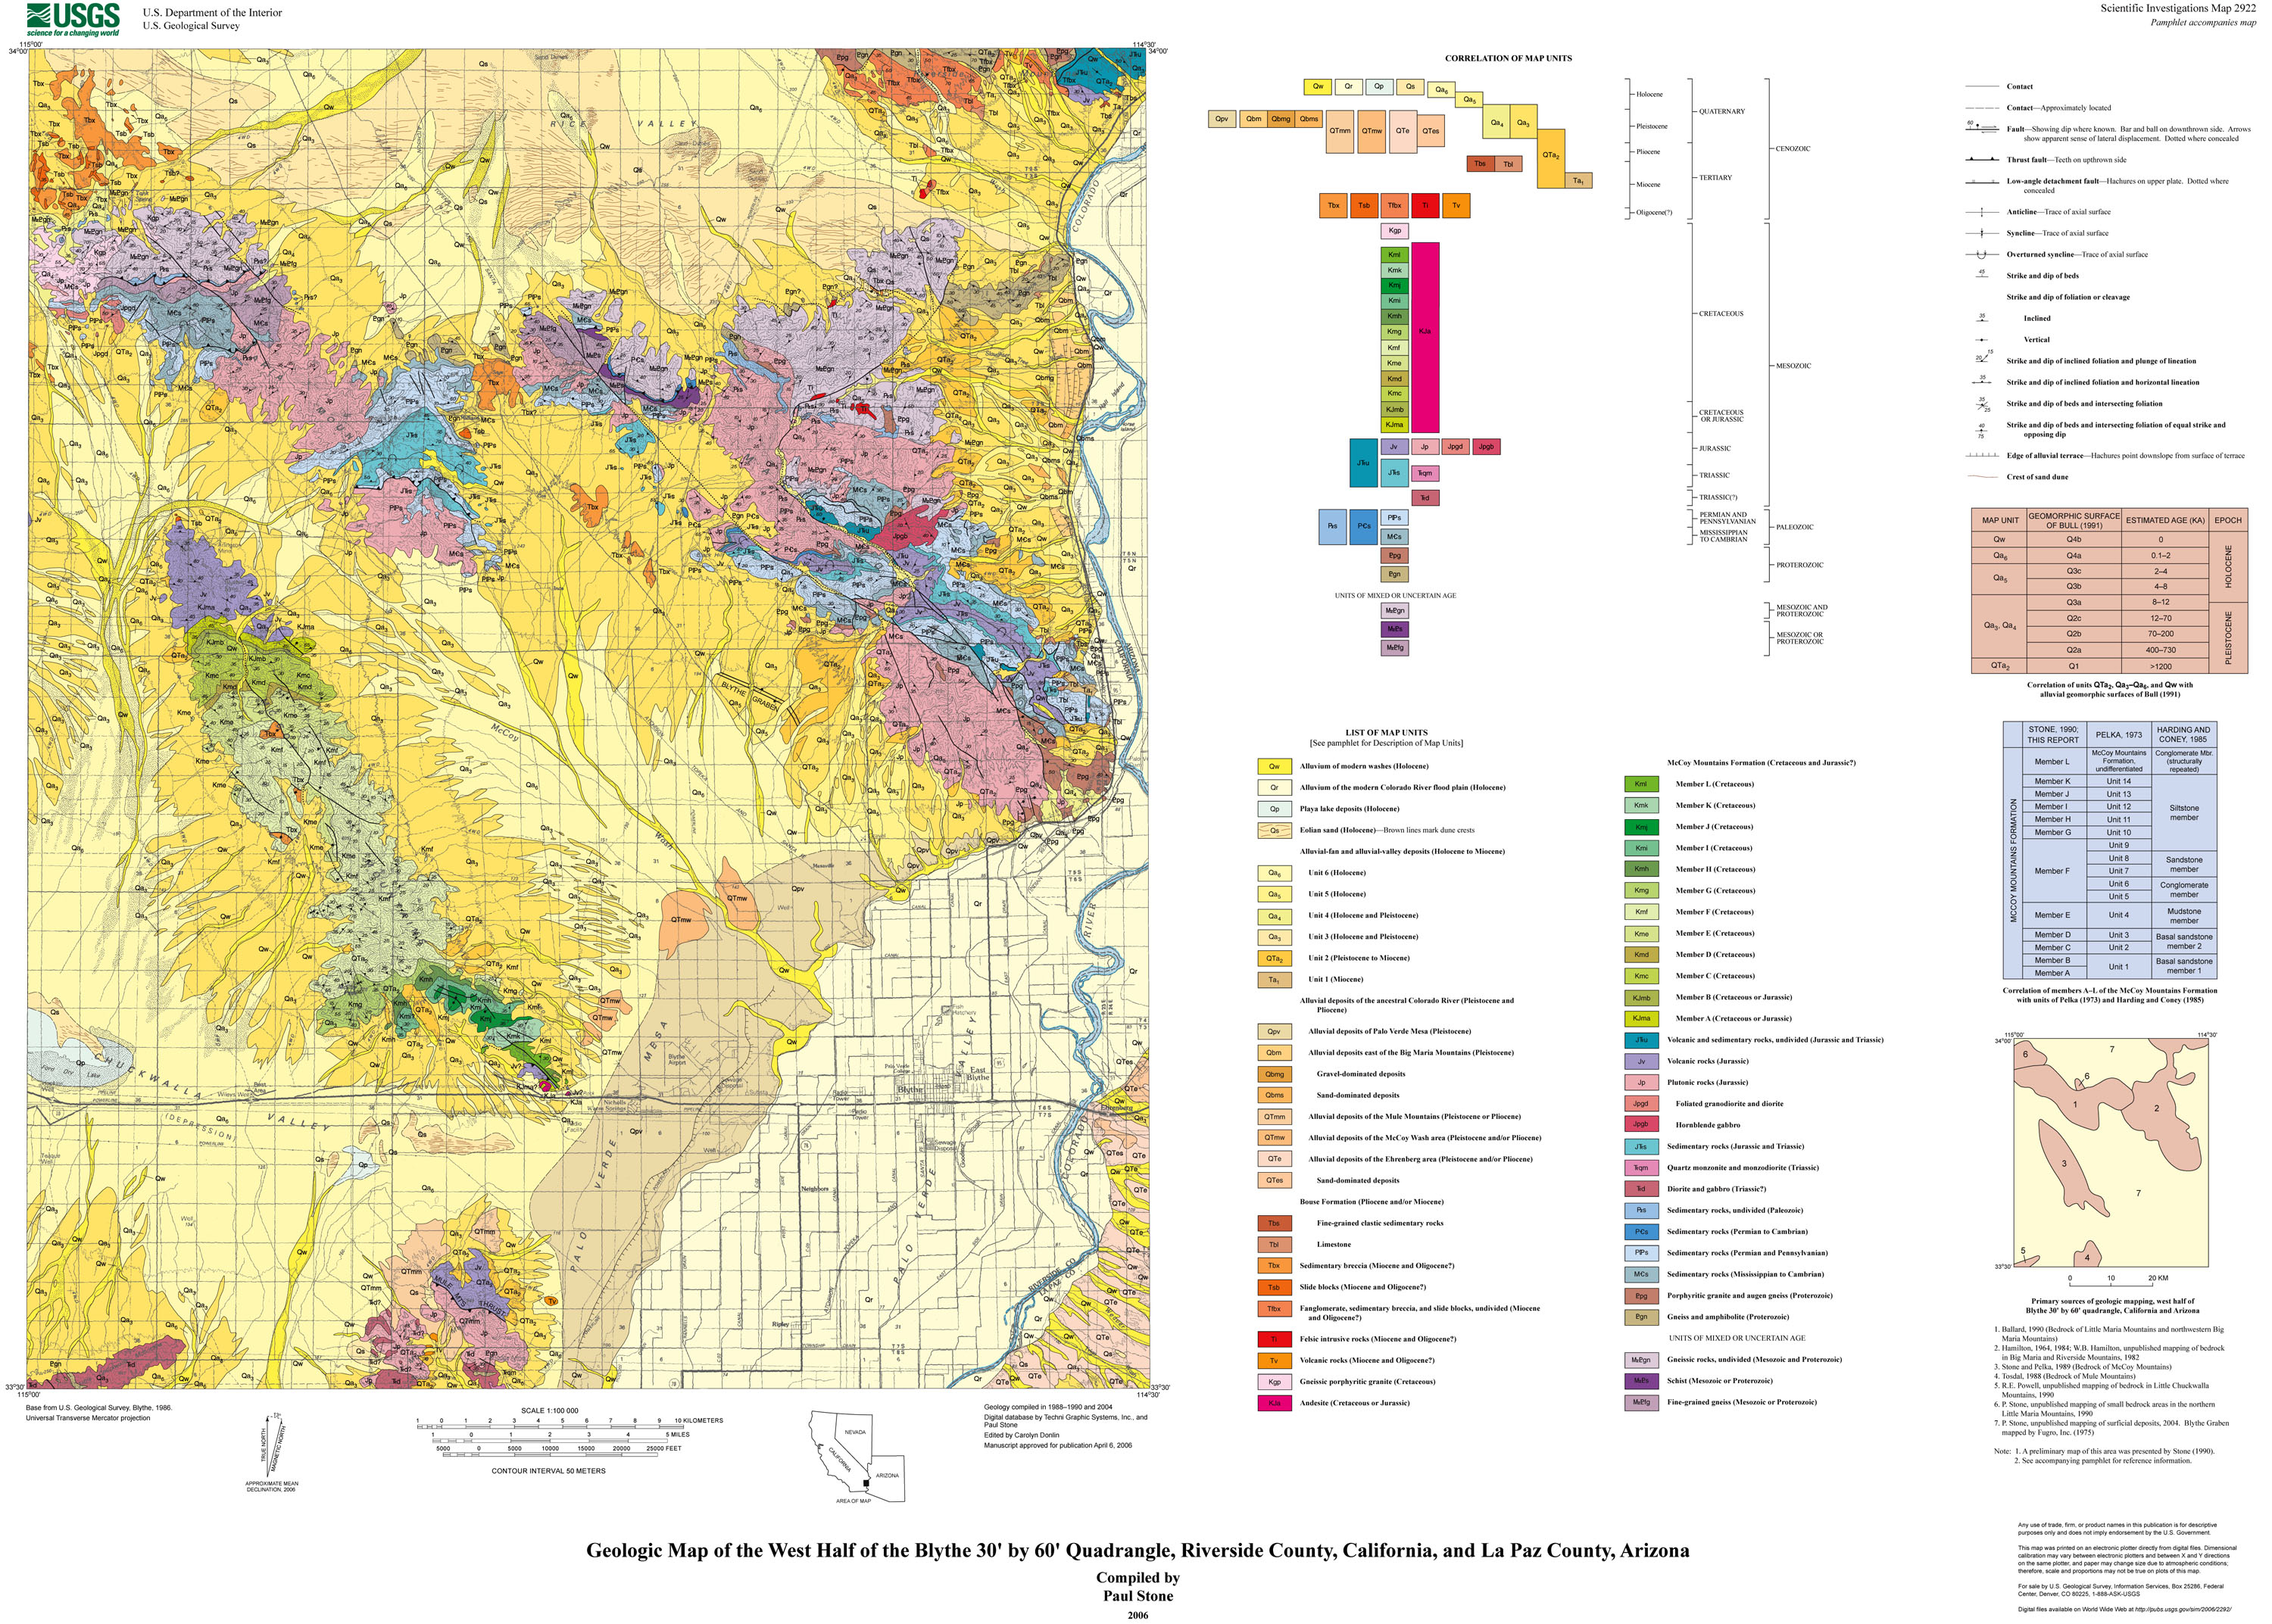 Geologic Map Of The West Half Of The Blythe 30'60' Quadrangle - California Geological Survey Maps